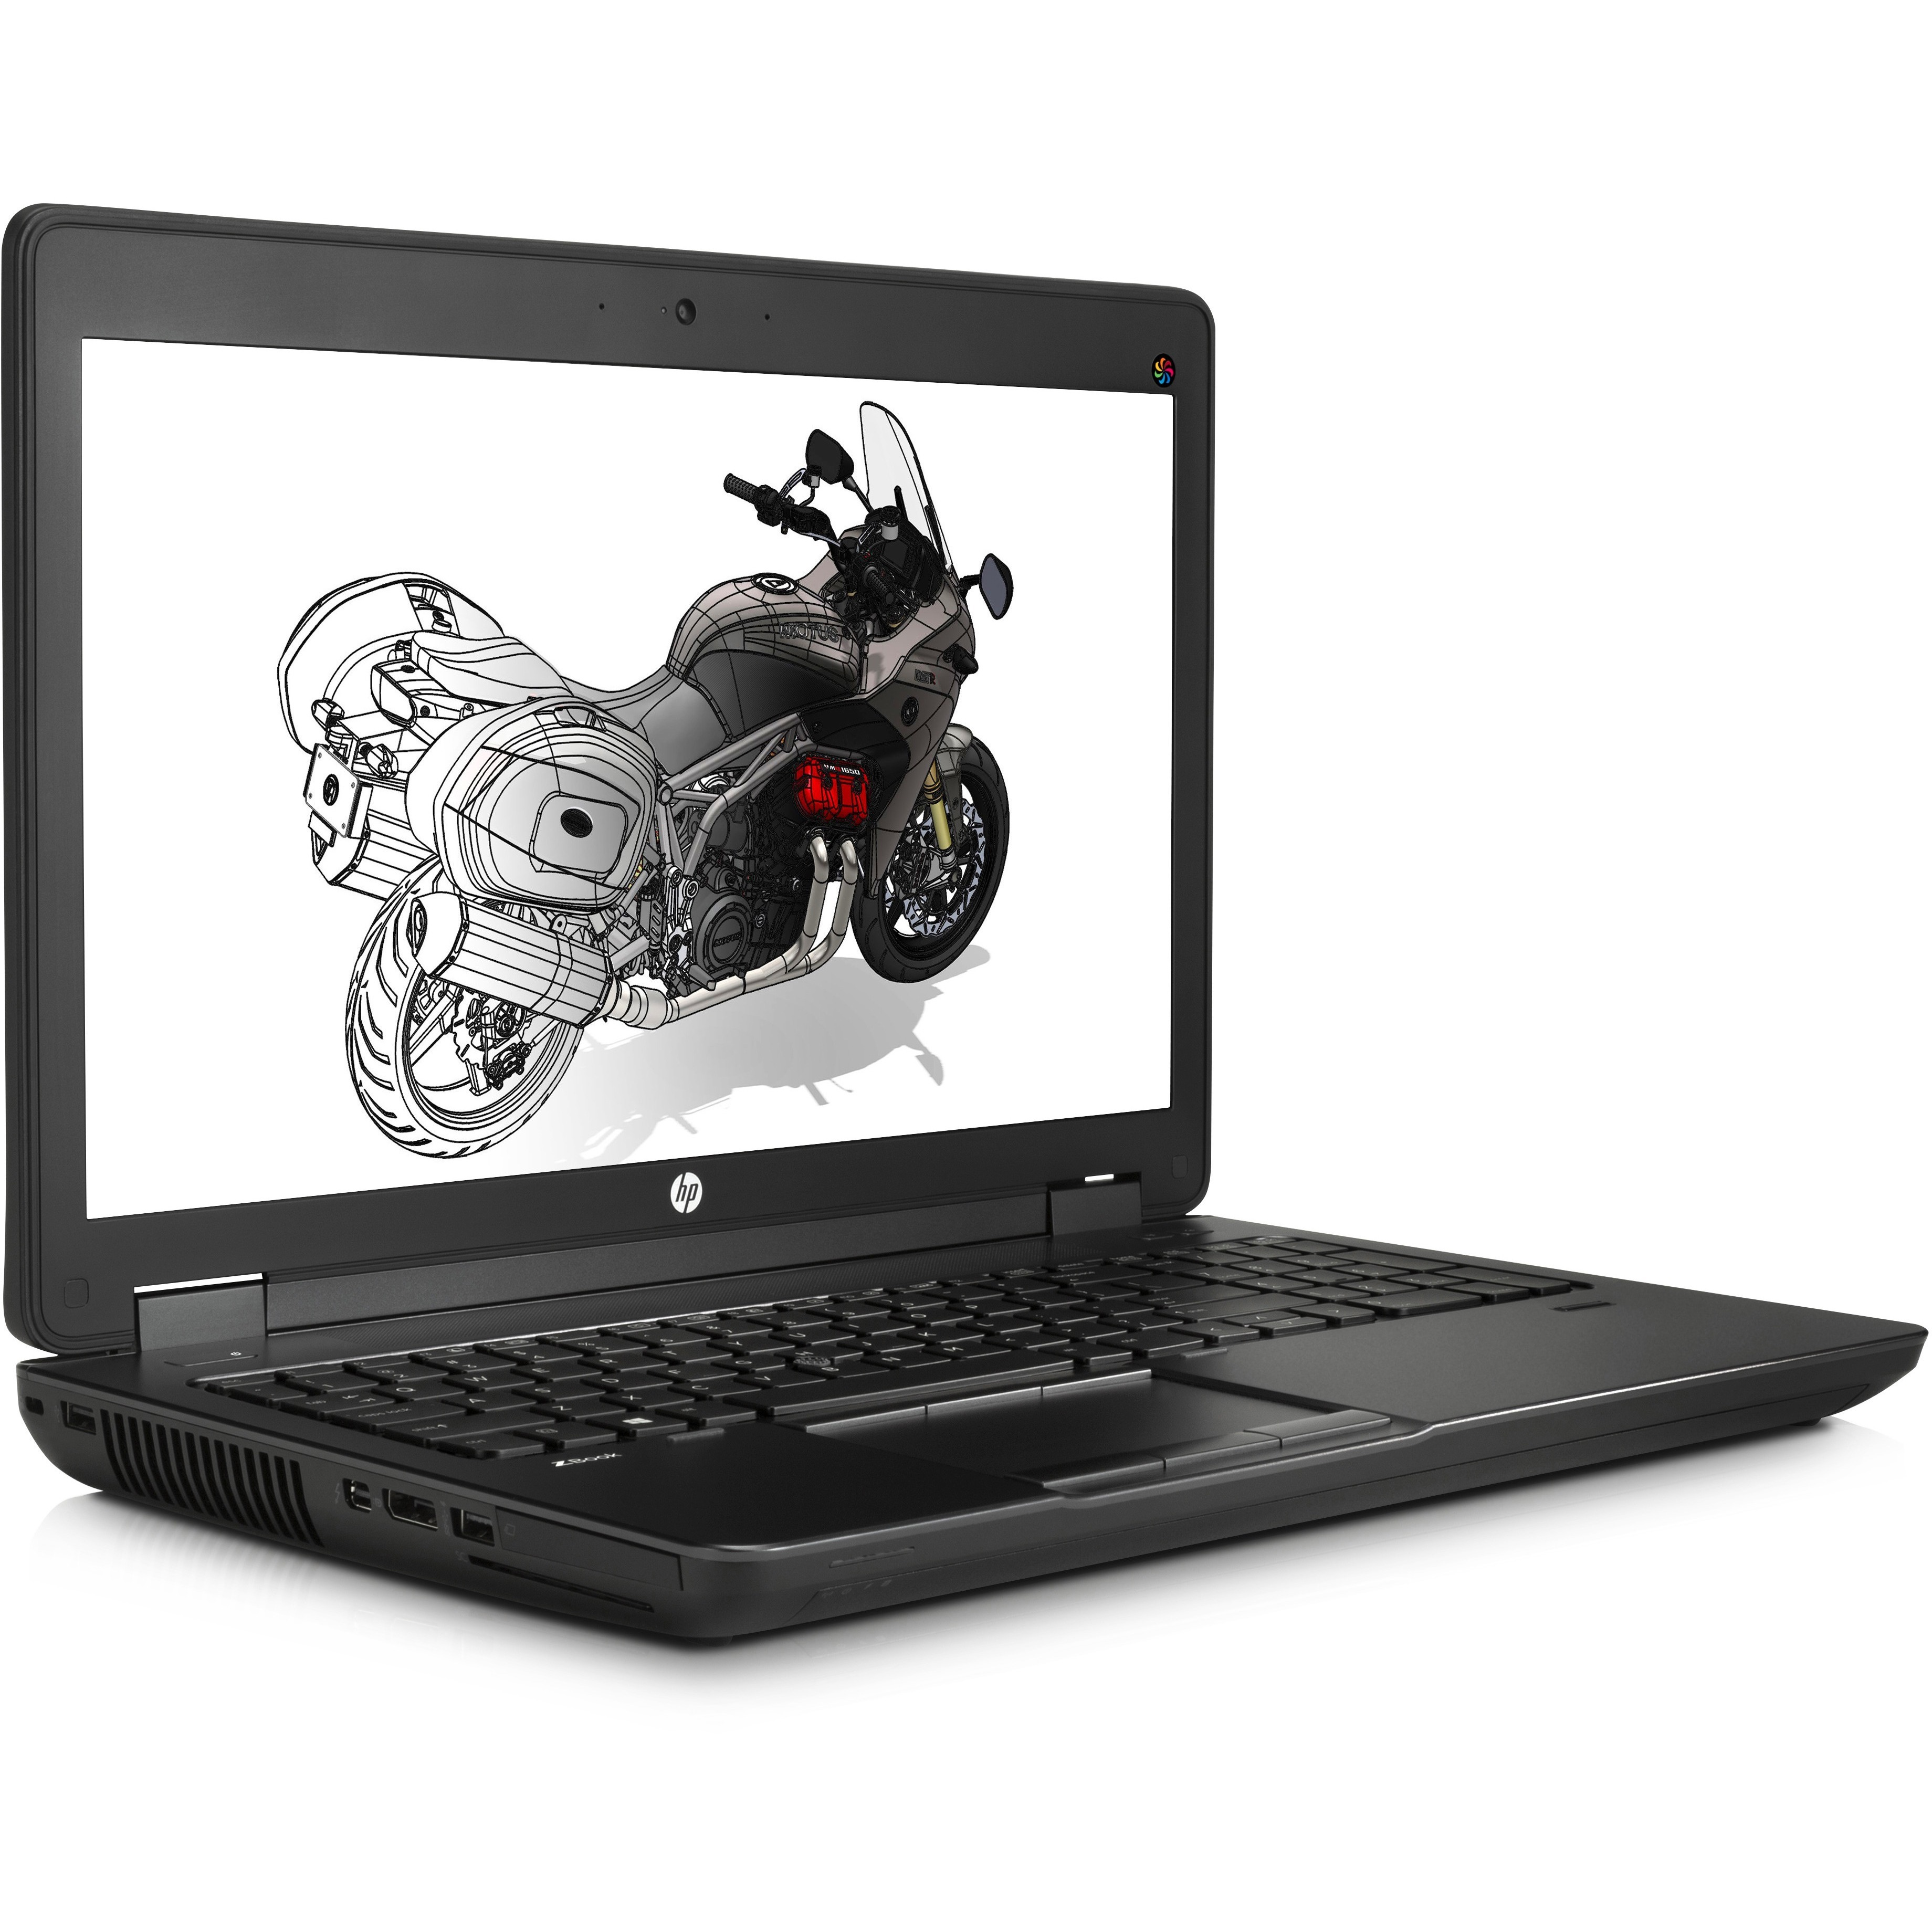 HP ZBook 15 G2 39.6 cm 15.6inch LED In-plane Switching IPS Technology Notebook - Intel Core i7 i7-4710MQ 2.50 GHz